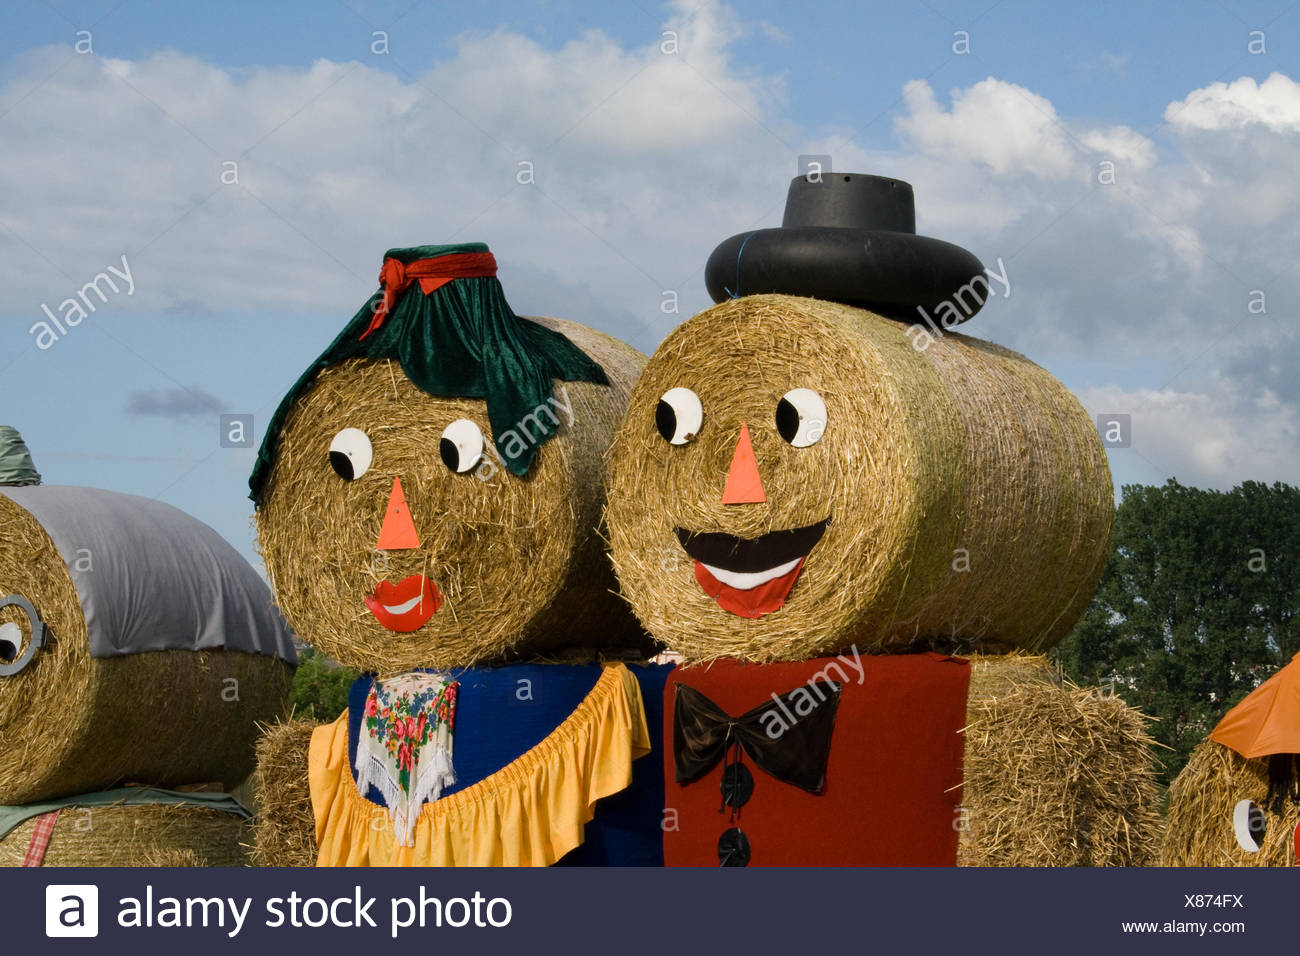 Two figures made out of straw bales Stock Photo